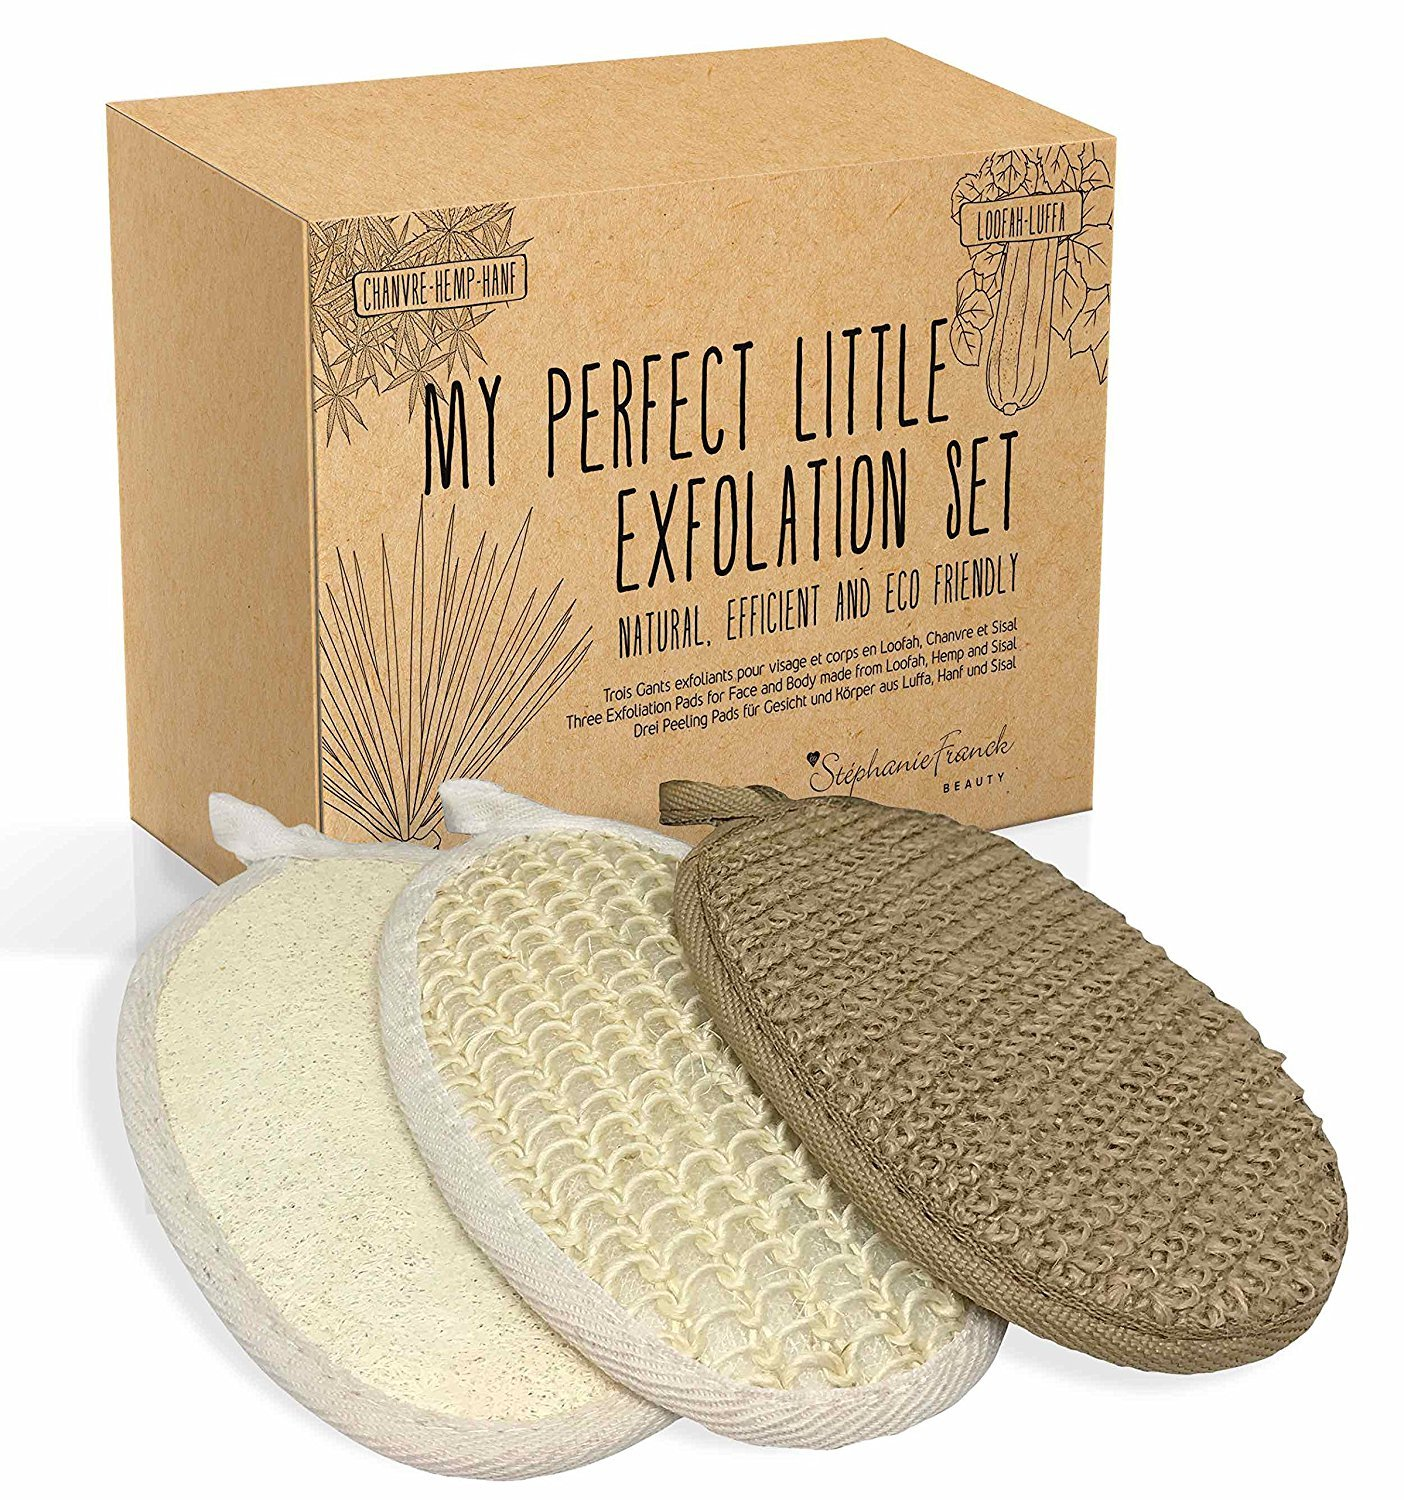 Exfolation Set of 3 Body and Face Peeling Gloves made of natural Loofah sponge and Hemp and Sisal Fibres- Exfoliating and Cleansing - Excellent eco-friendly Gift Stephanie Franck